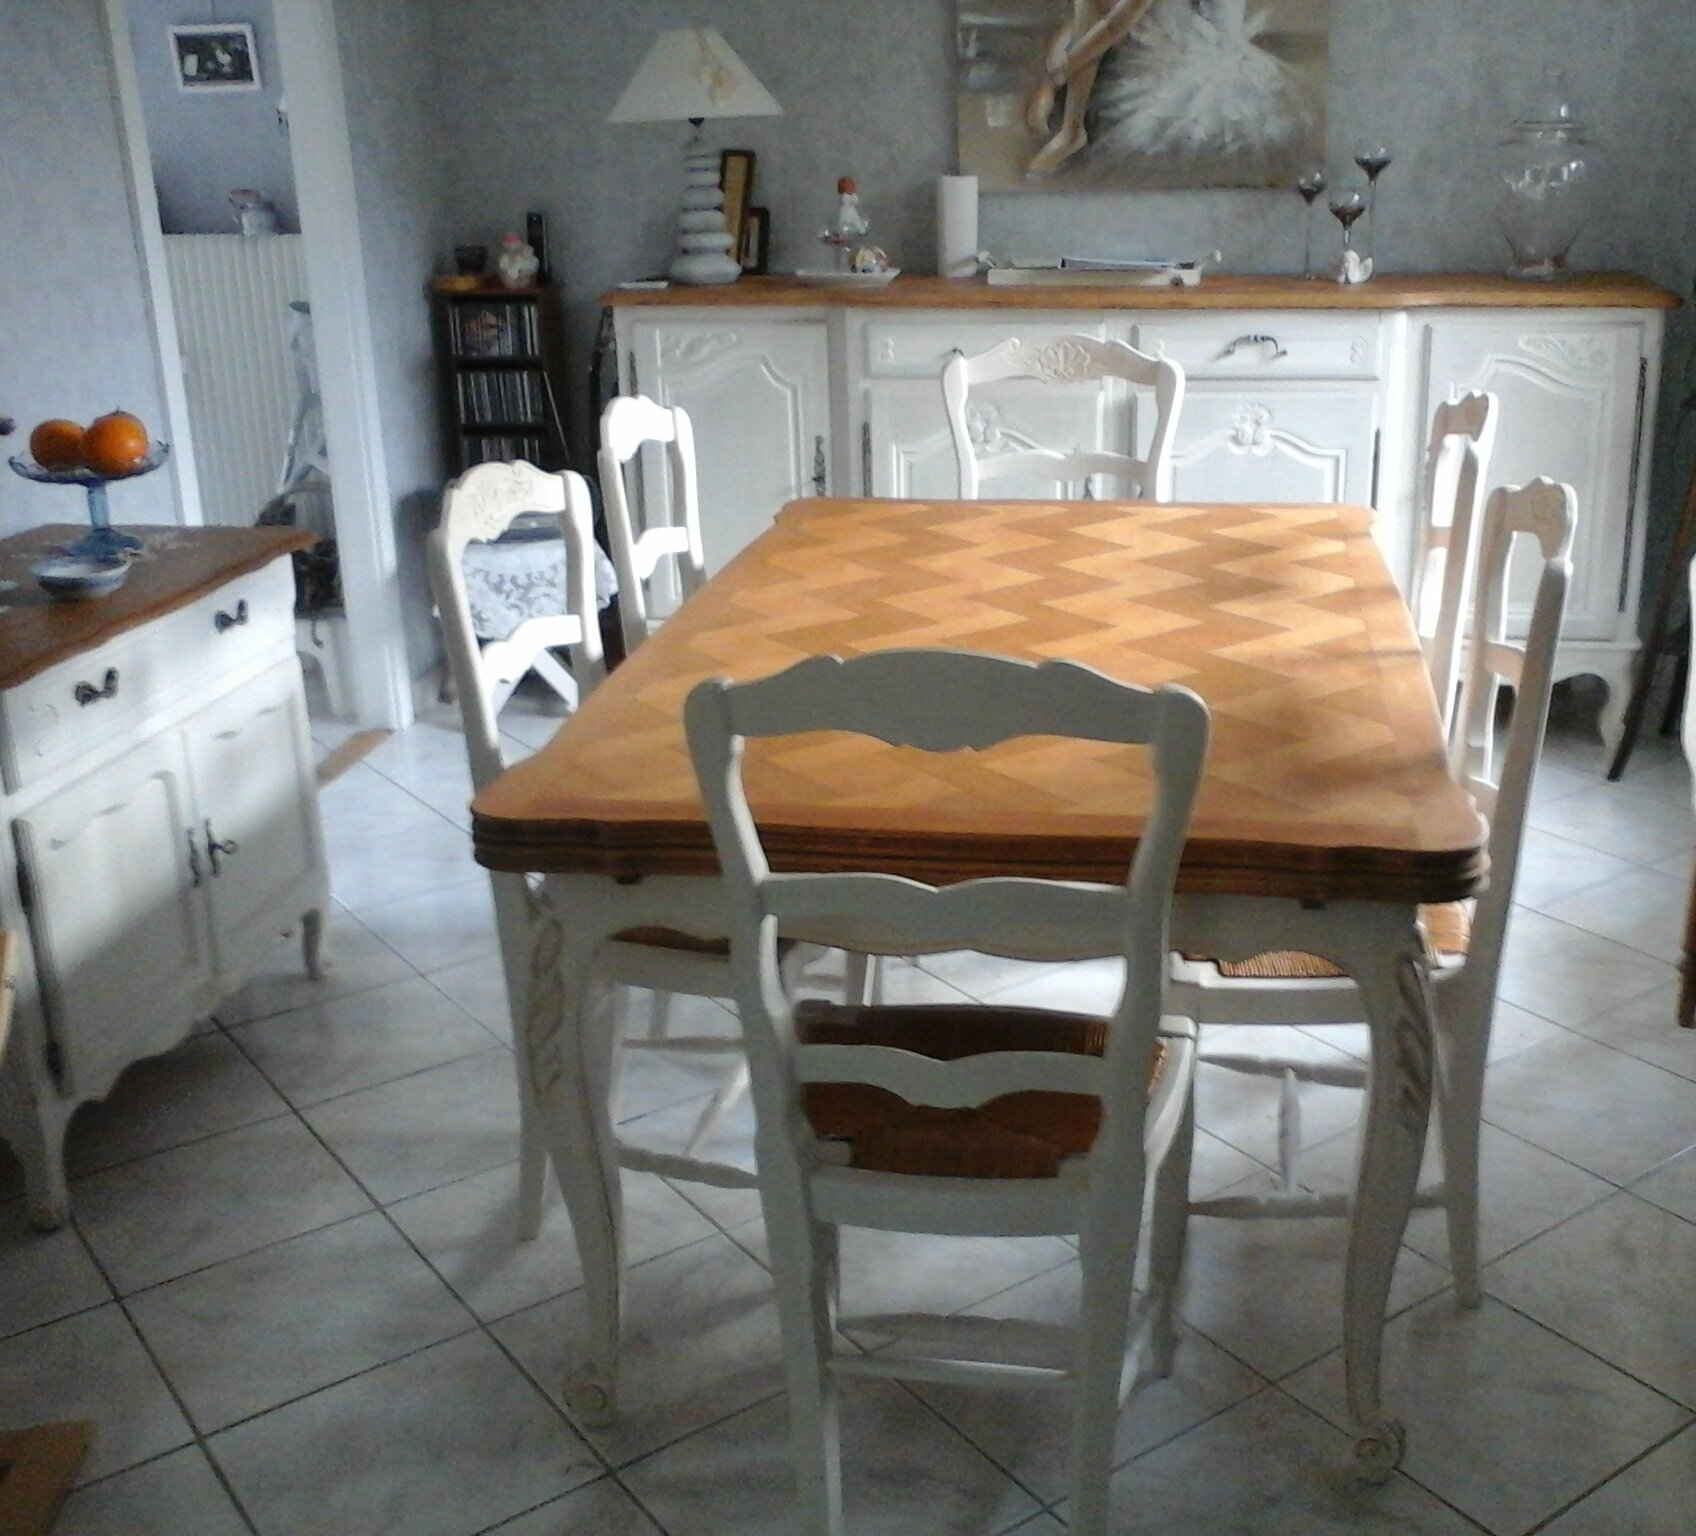 Relooker une table en ch ne ou merisier table monast re richelieu ou louis 15 pr s de nancy - Ceruser une table en chene ...